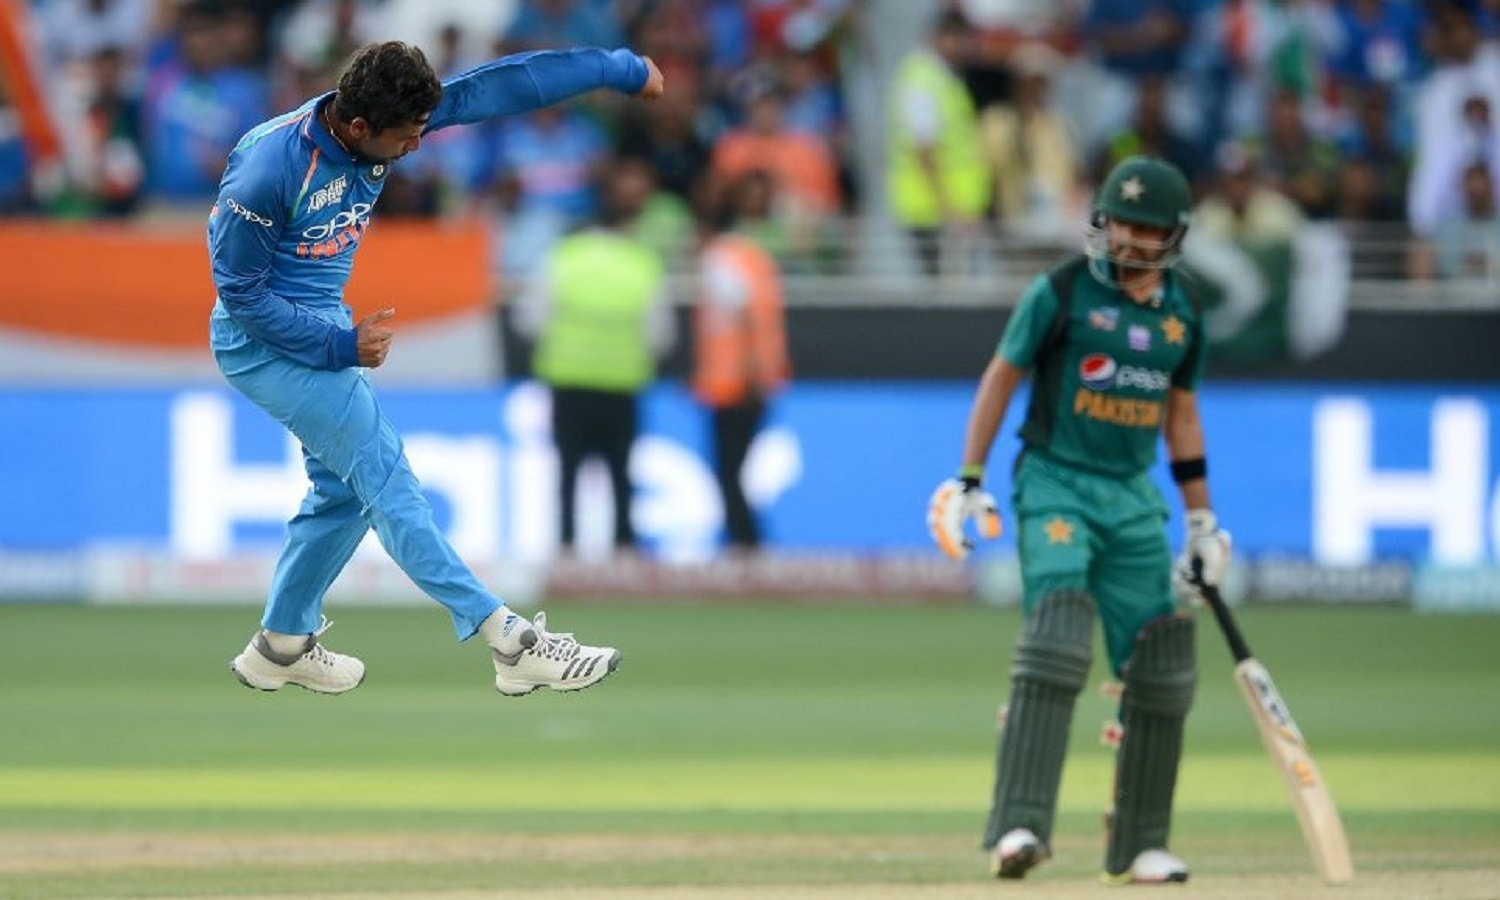 An Indian player celebrates as a Pakistani counterpart looks on during their Asia Cup encounter. — AFP